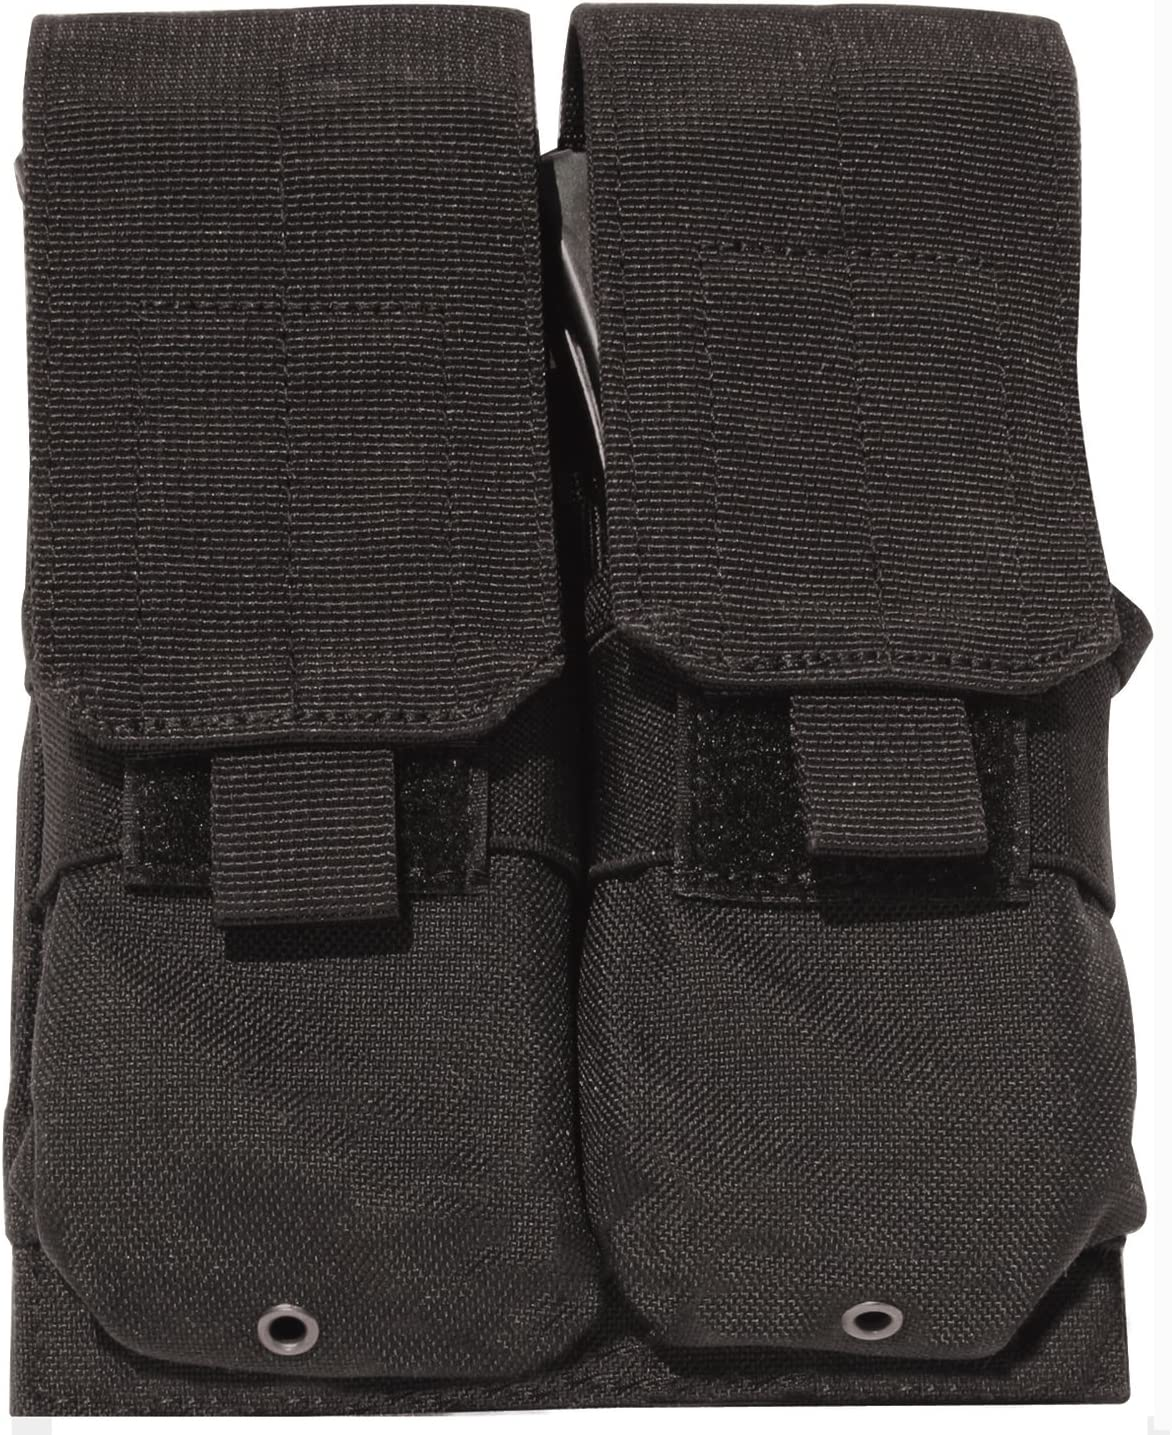 Galati Gear Molle Superior M-4 Pouch Rifle Complete Free Shipping Magazine Double